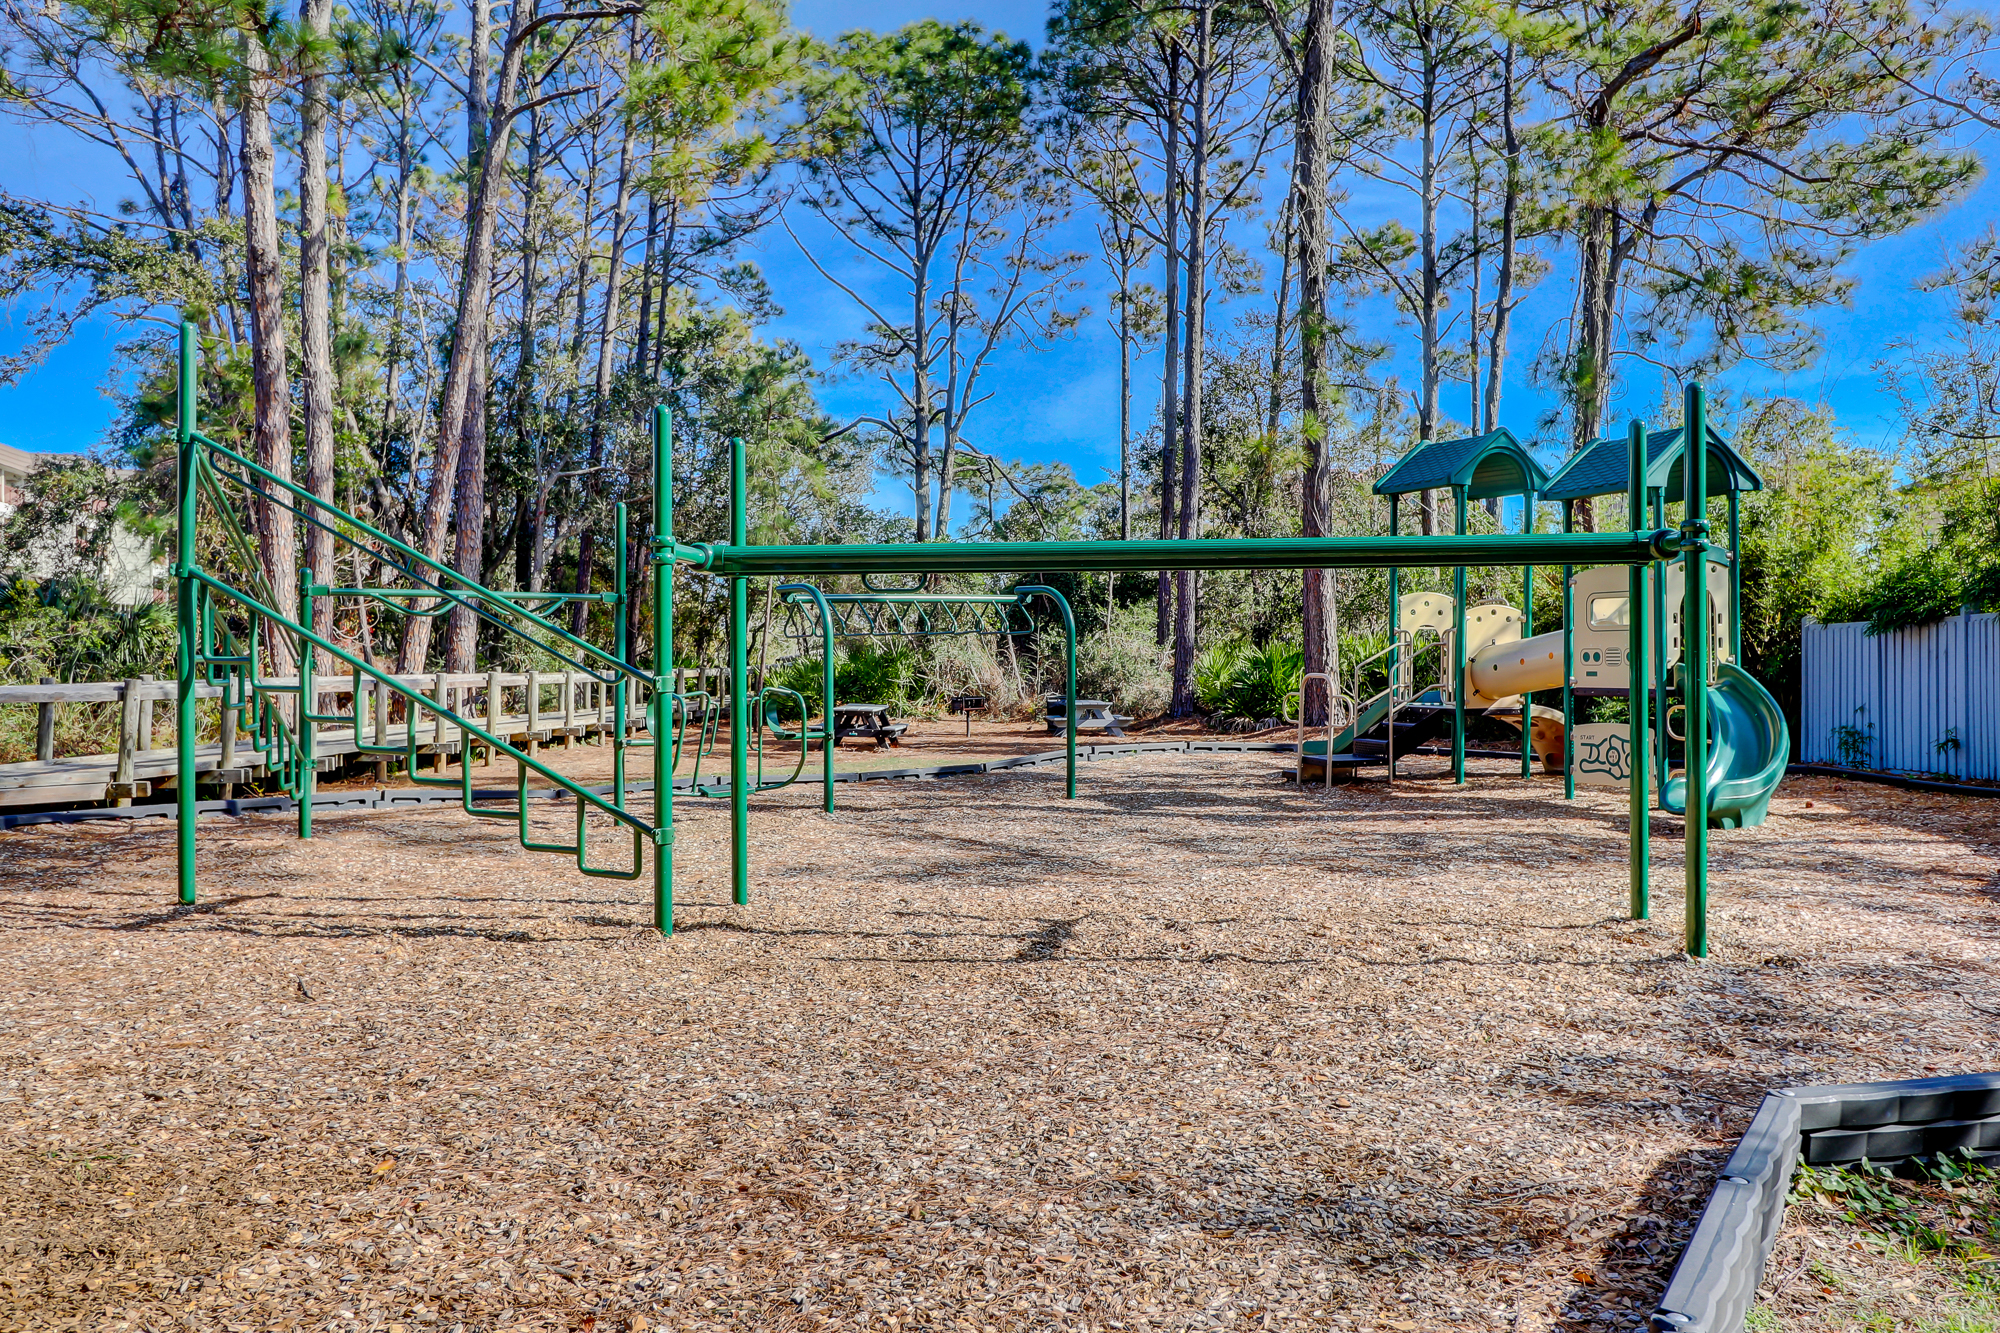 Driessen Beach Park also has a playground and the boardwalk to the beach is extended with beach matting for easy access. 8 Bradley Beach, Hilton Head Island, MLS# 388240